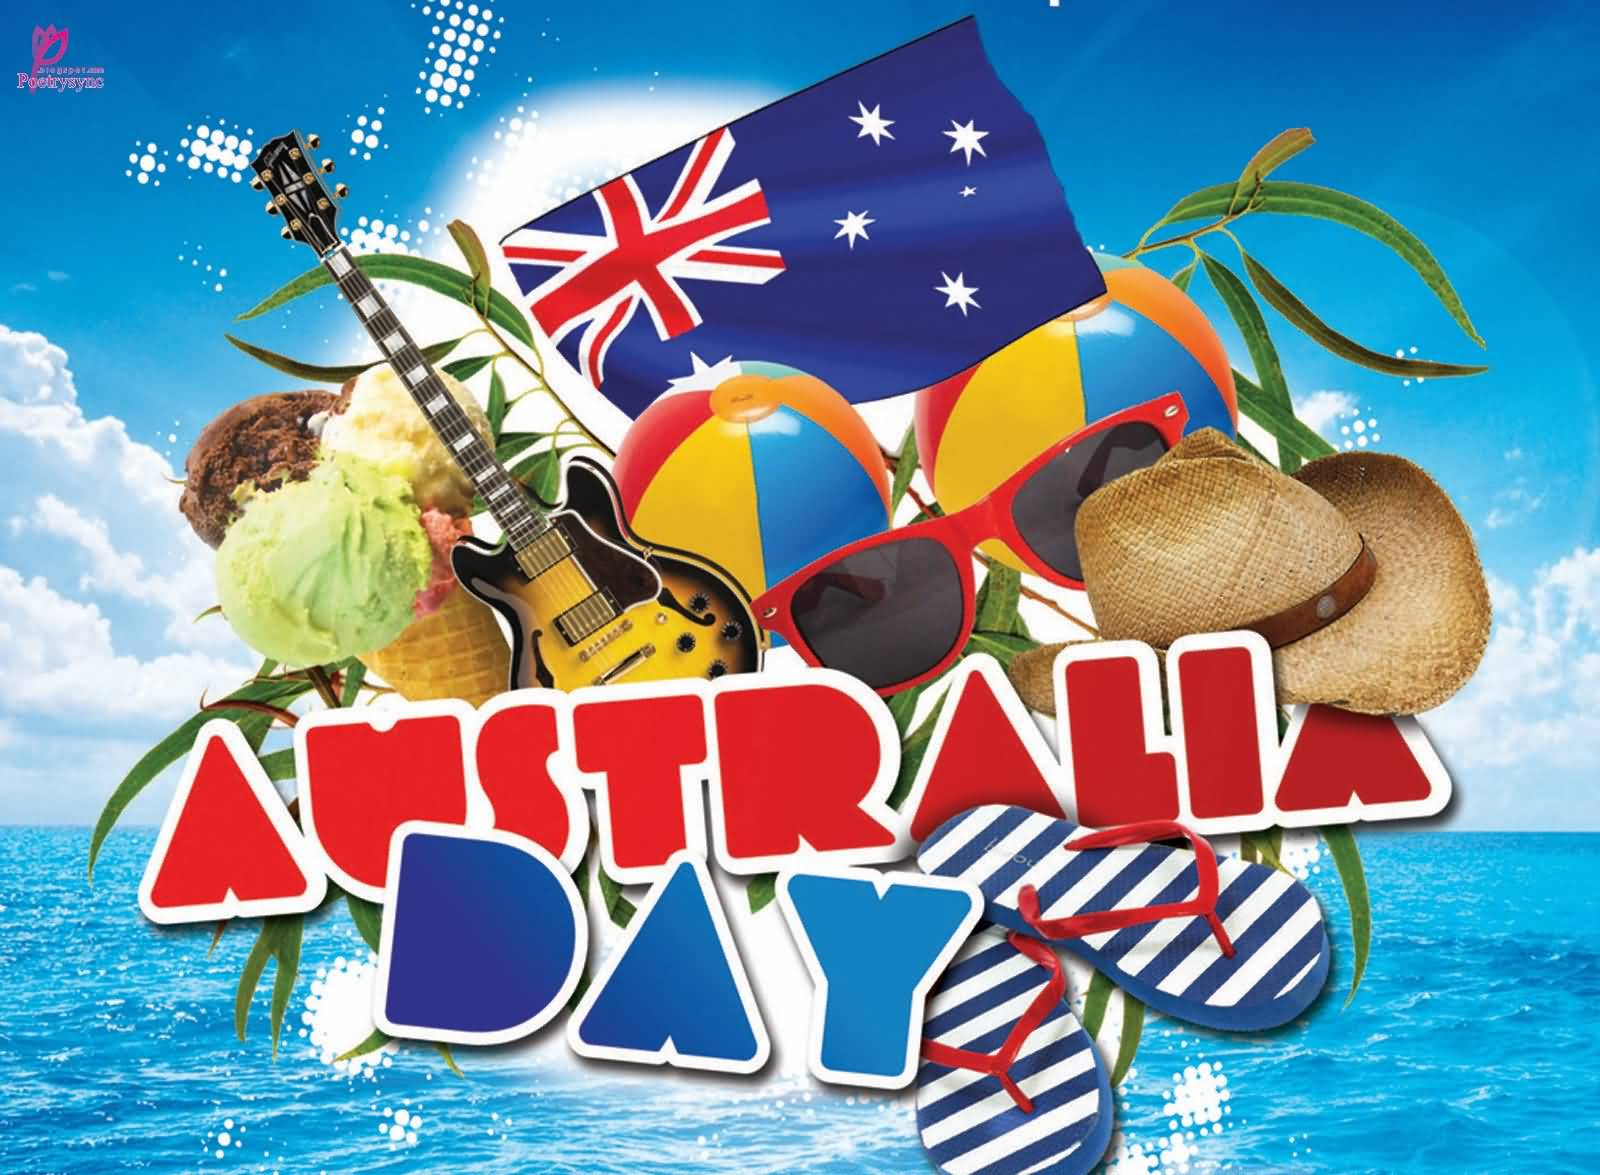 Australia day greetings m4hsunfo